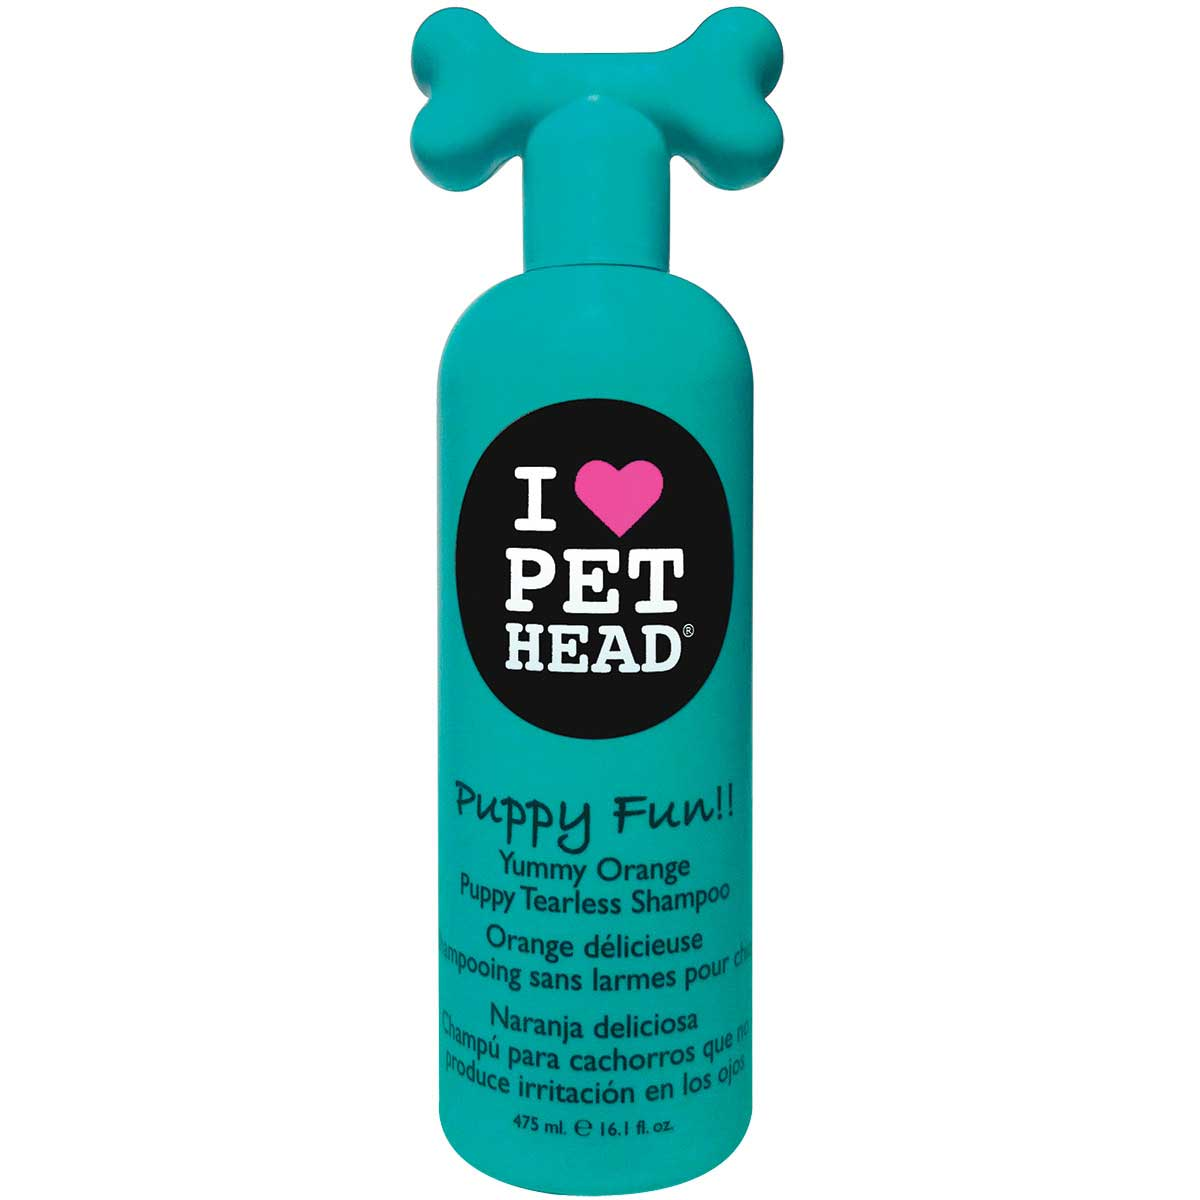 Pet Head Puppy Fun! Yummy Orange Tearless Shampoo for Puppies 16.1 oz